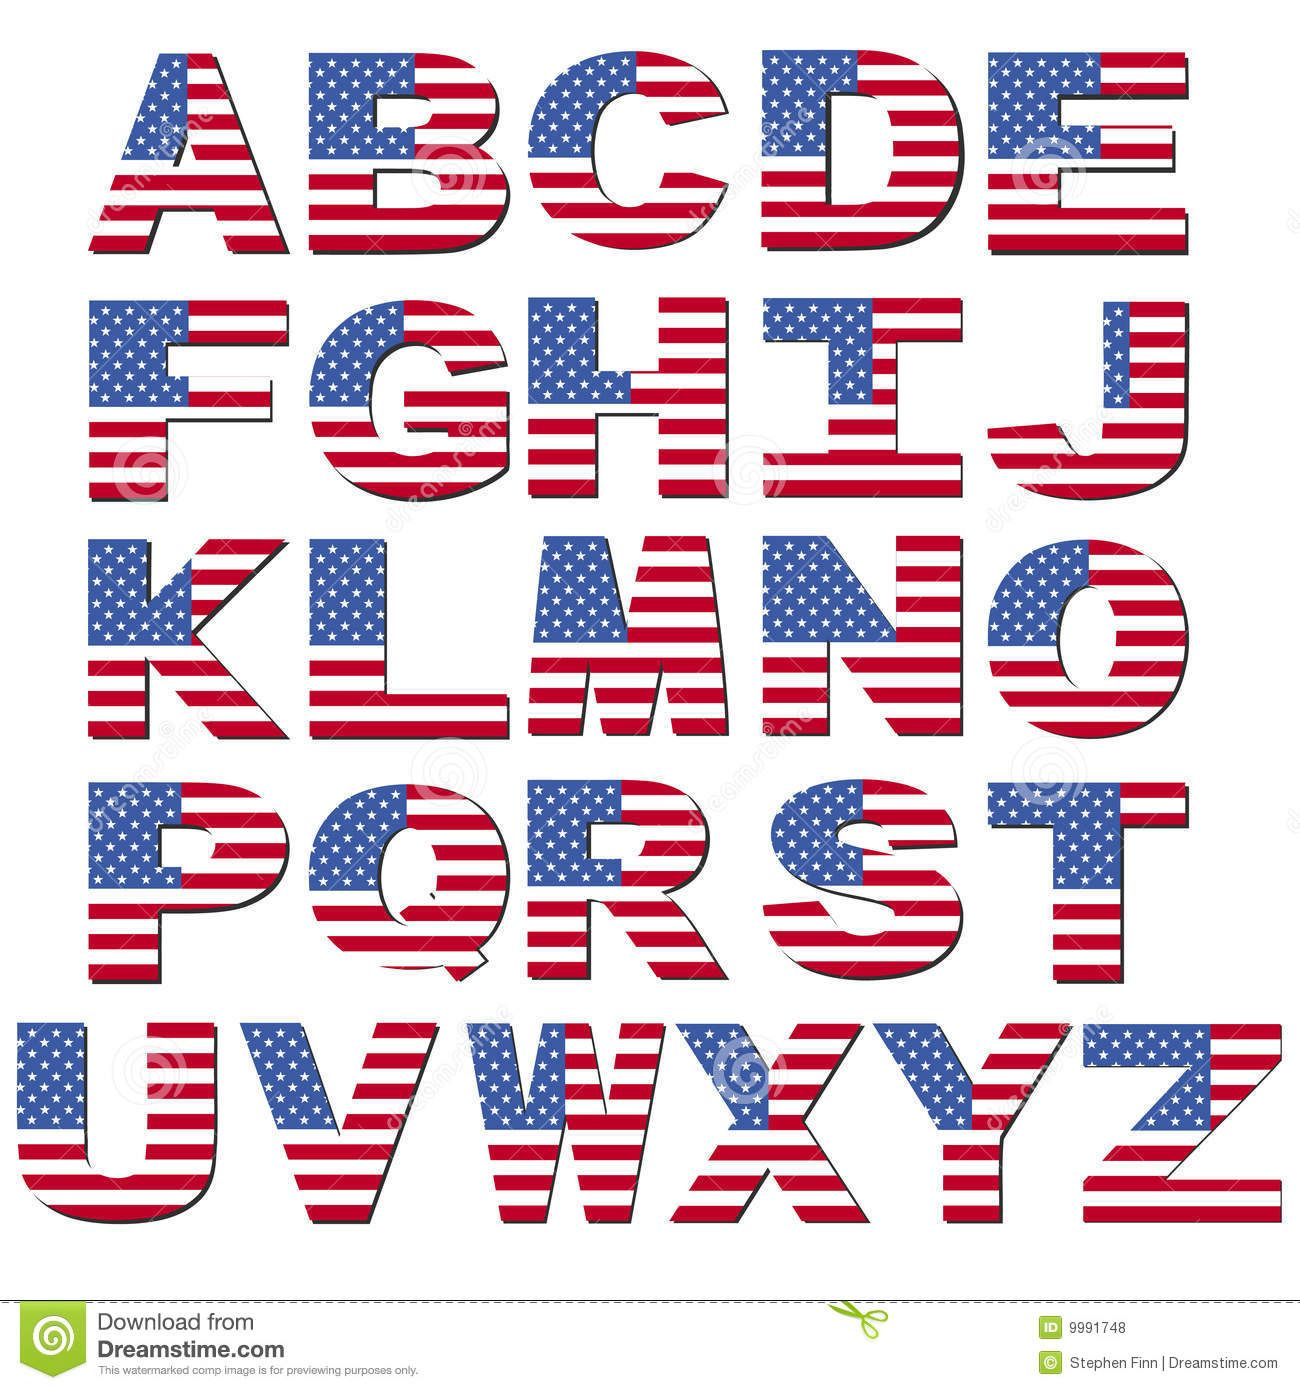 388a0dd0359 American Flag Font - Download From Over 62 Million High Quality Stock  Photos